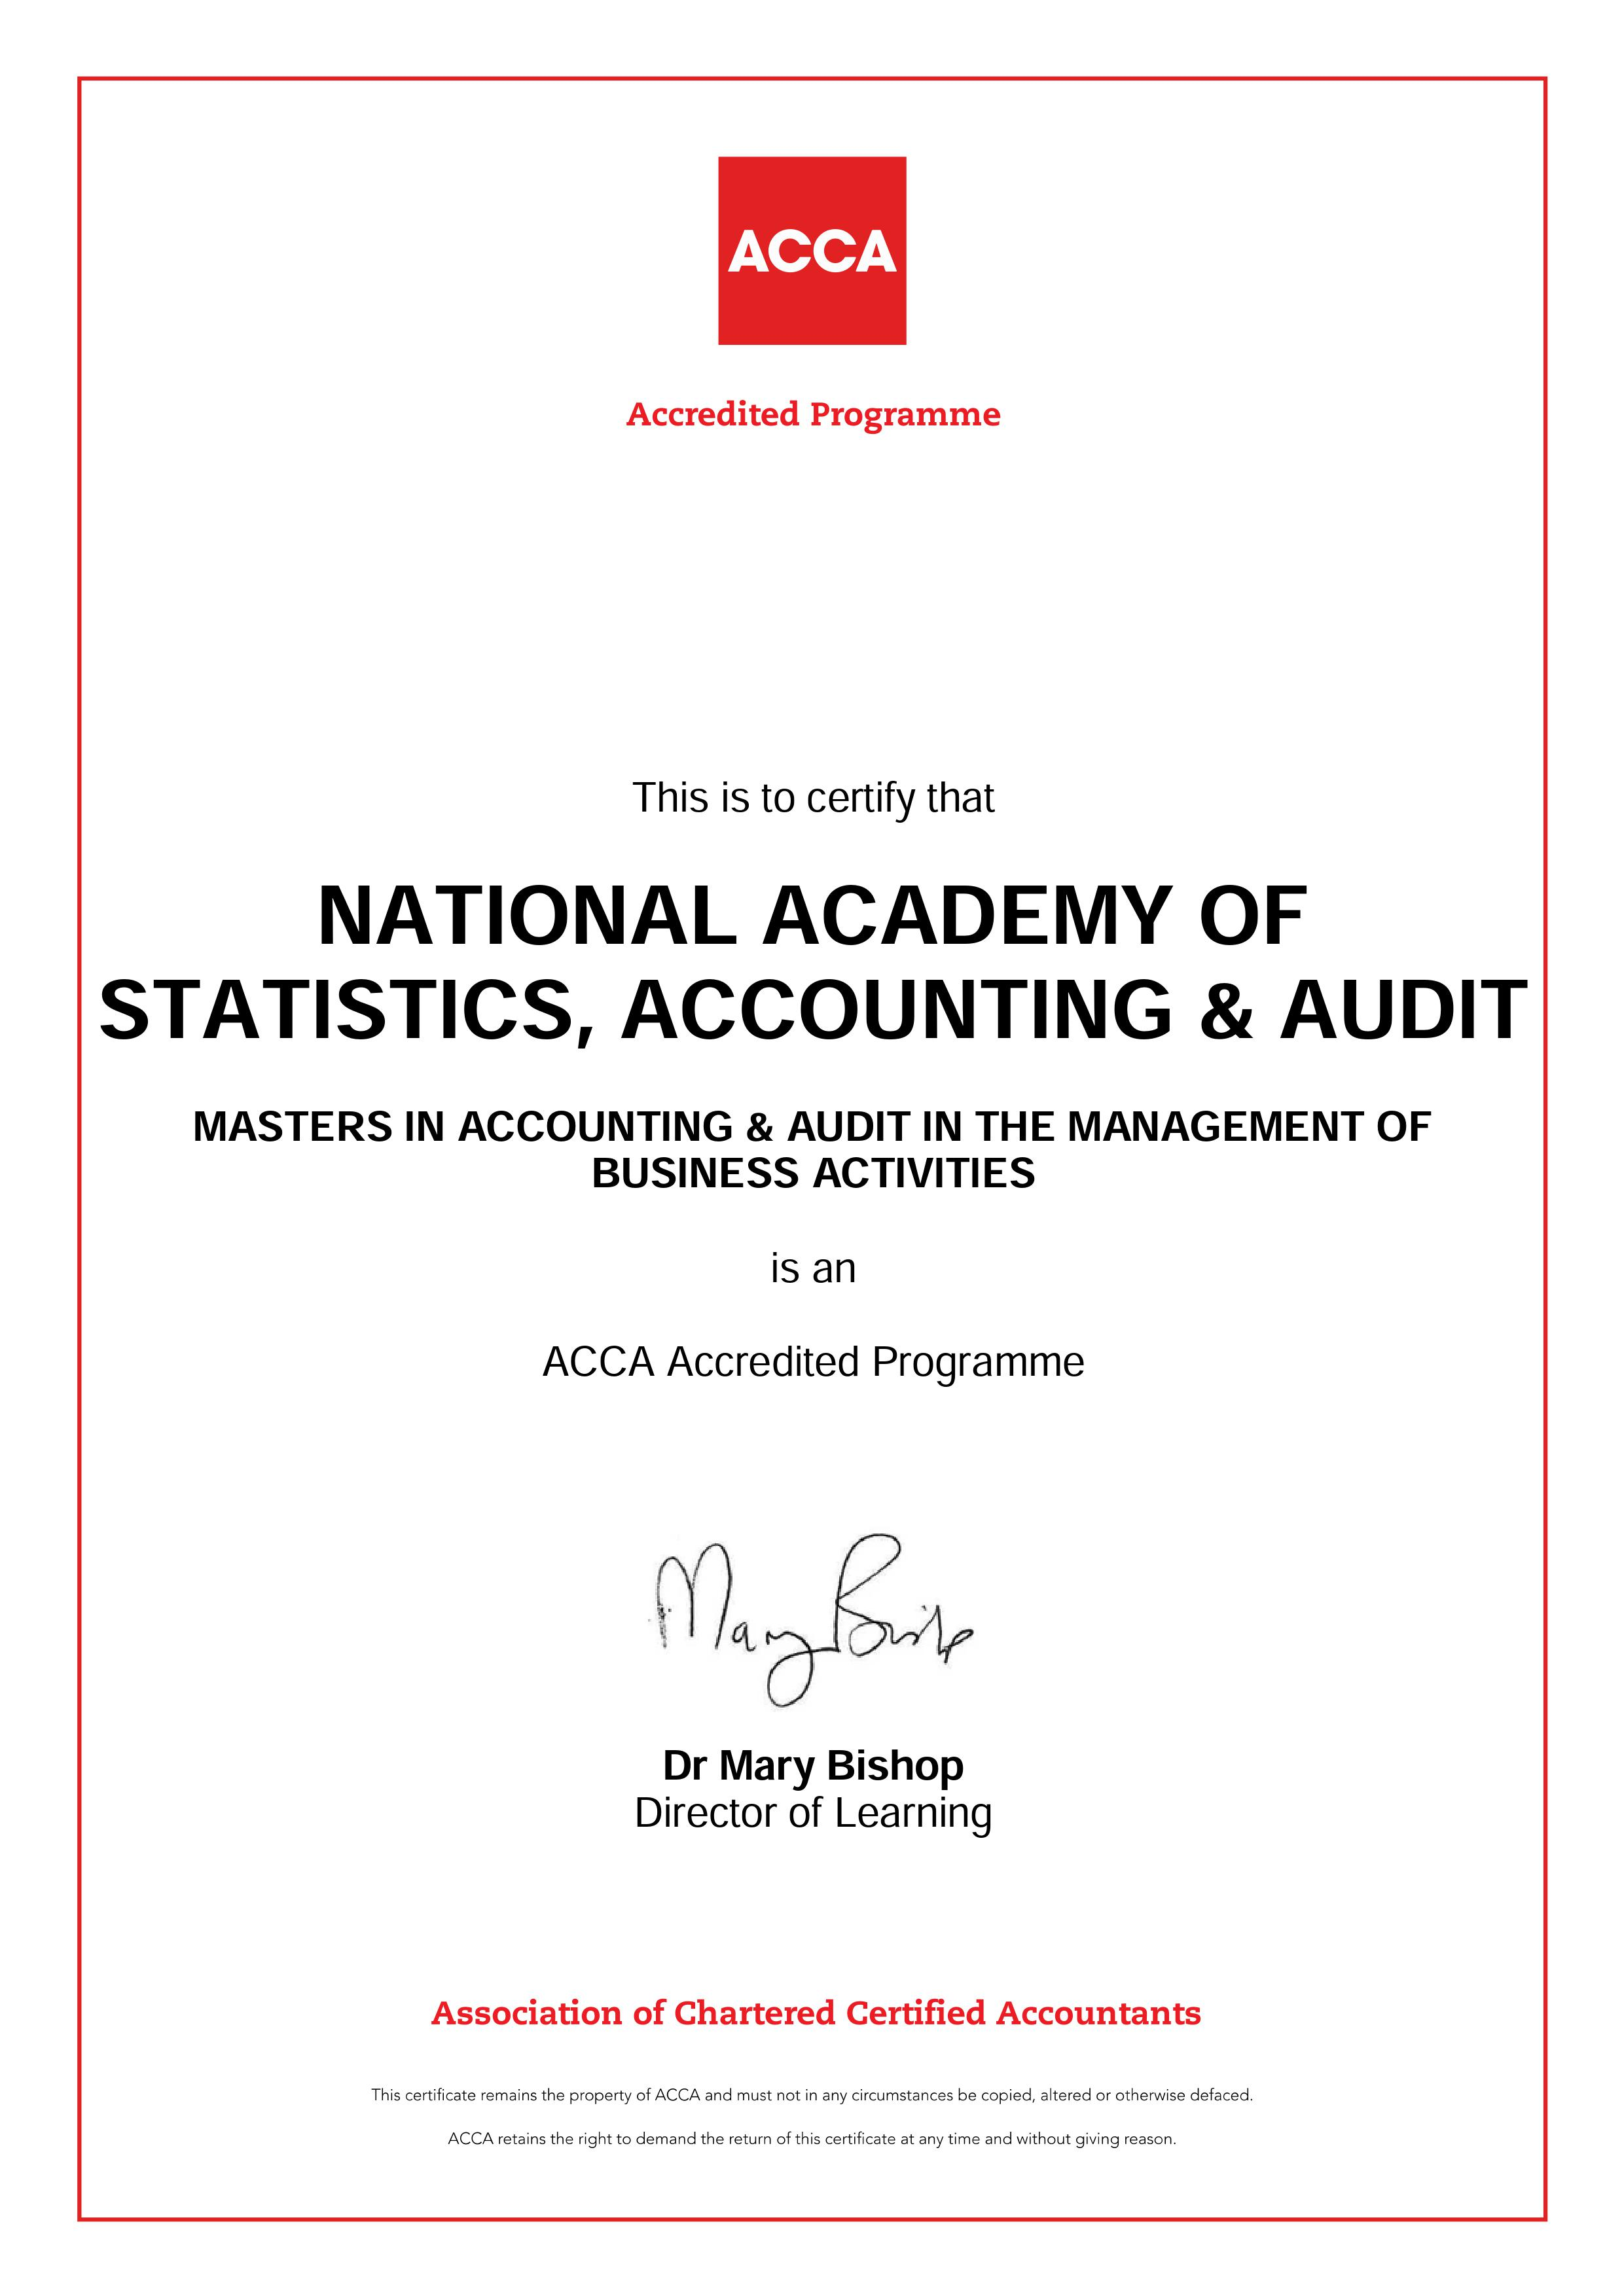 Accredited masters program sets for accounting and auditing in acca 1betcityfo Gallery